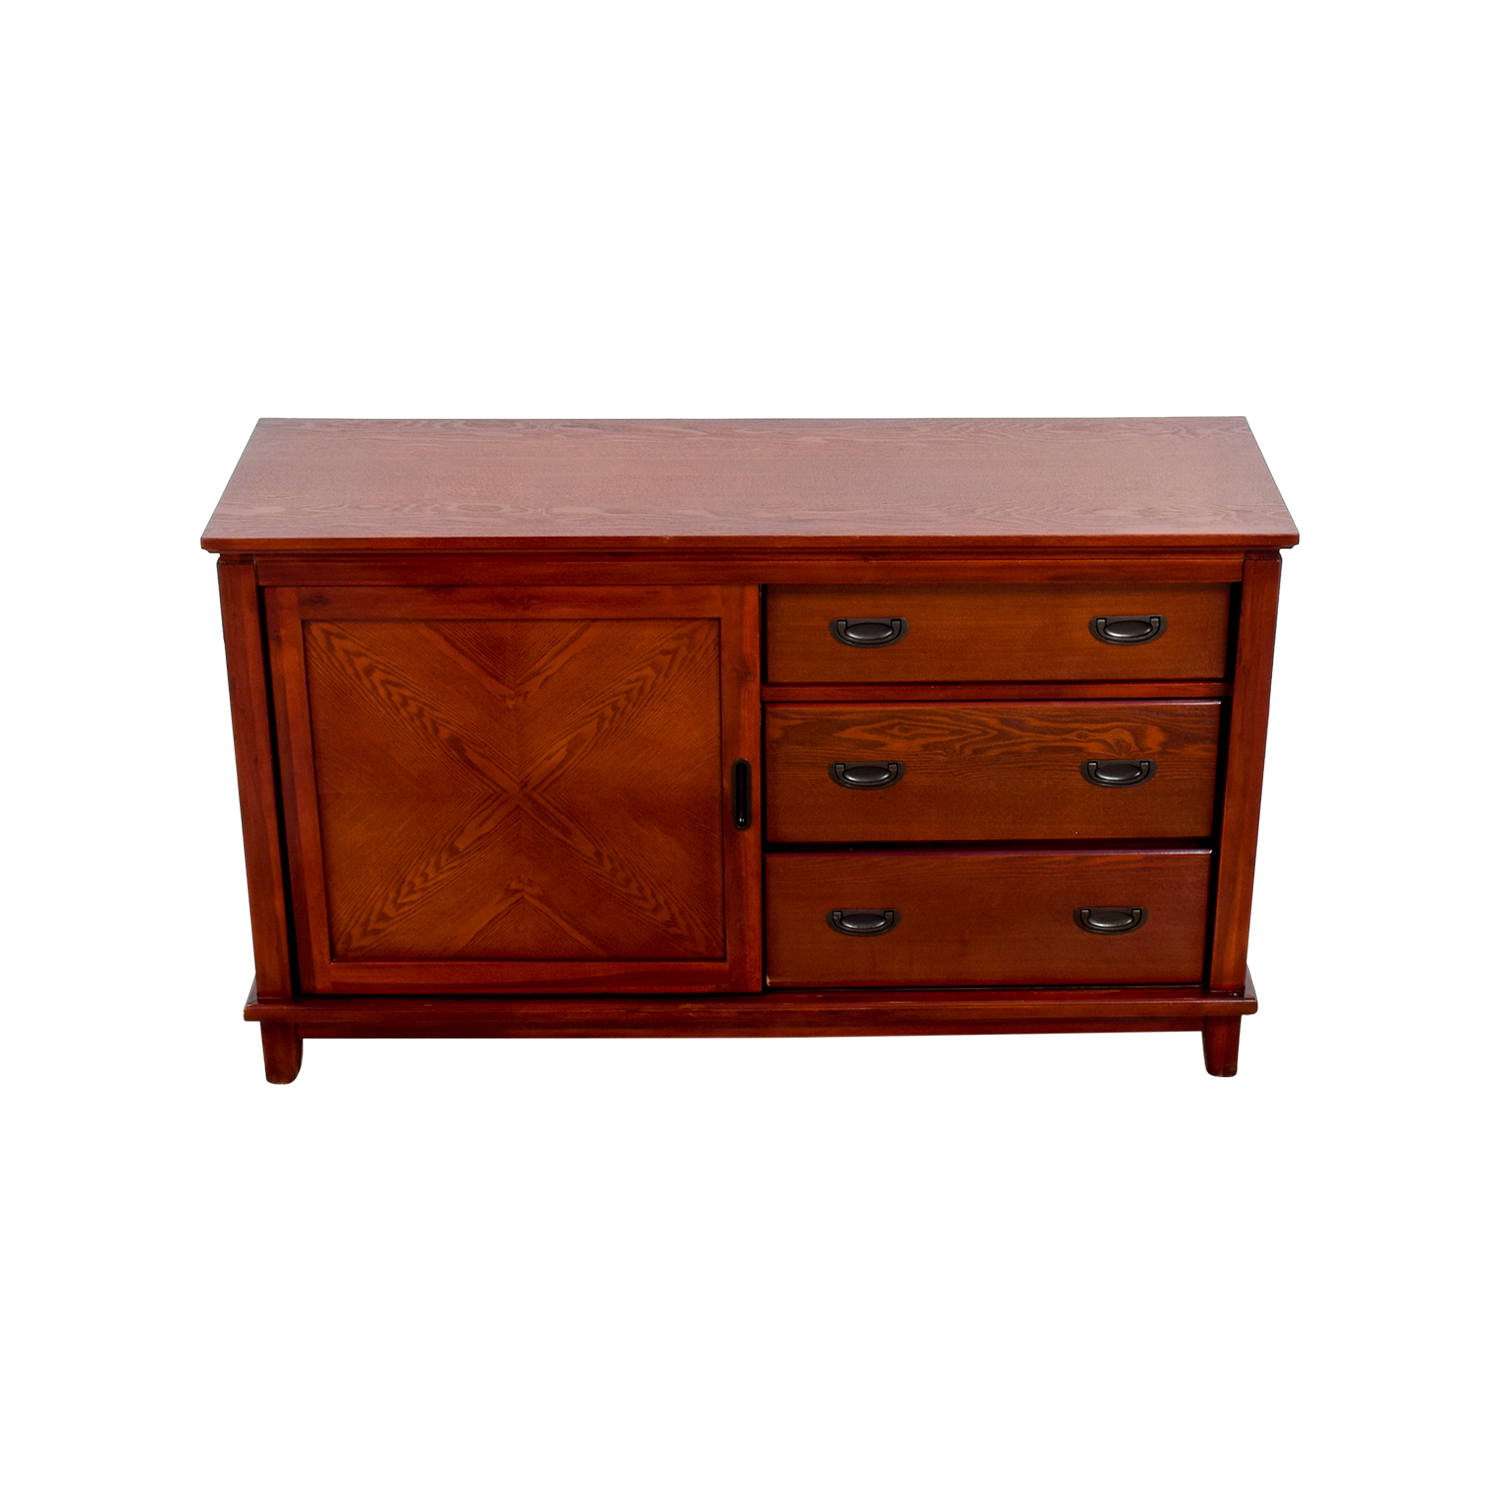 shop Bobs Furniture Mission Oak Dresser Bobs Furniture